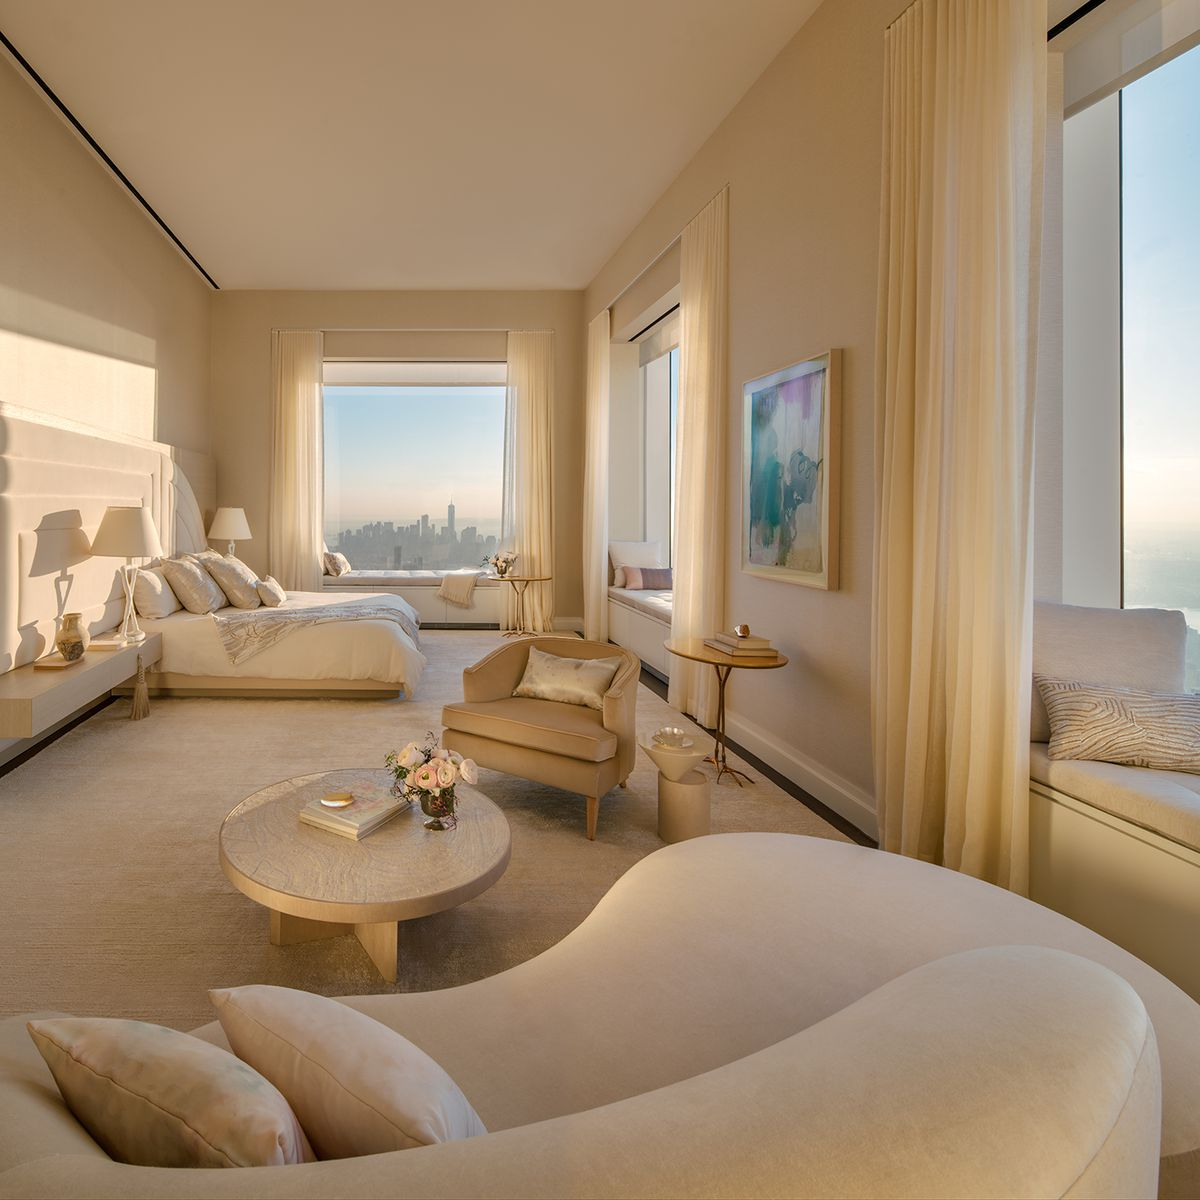 Nyc One Bedroom Apartments: Peek Inside 432 Park Avenue's $40M, 92nd-floor Penthouse